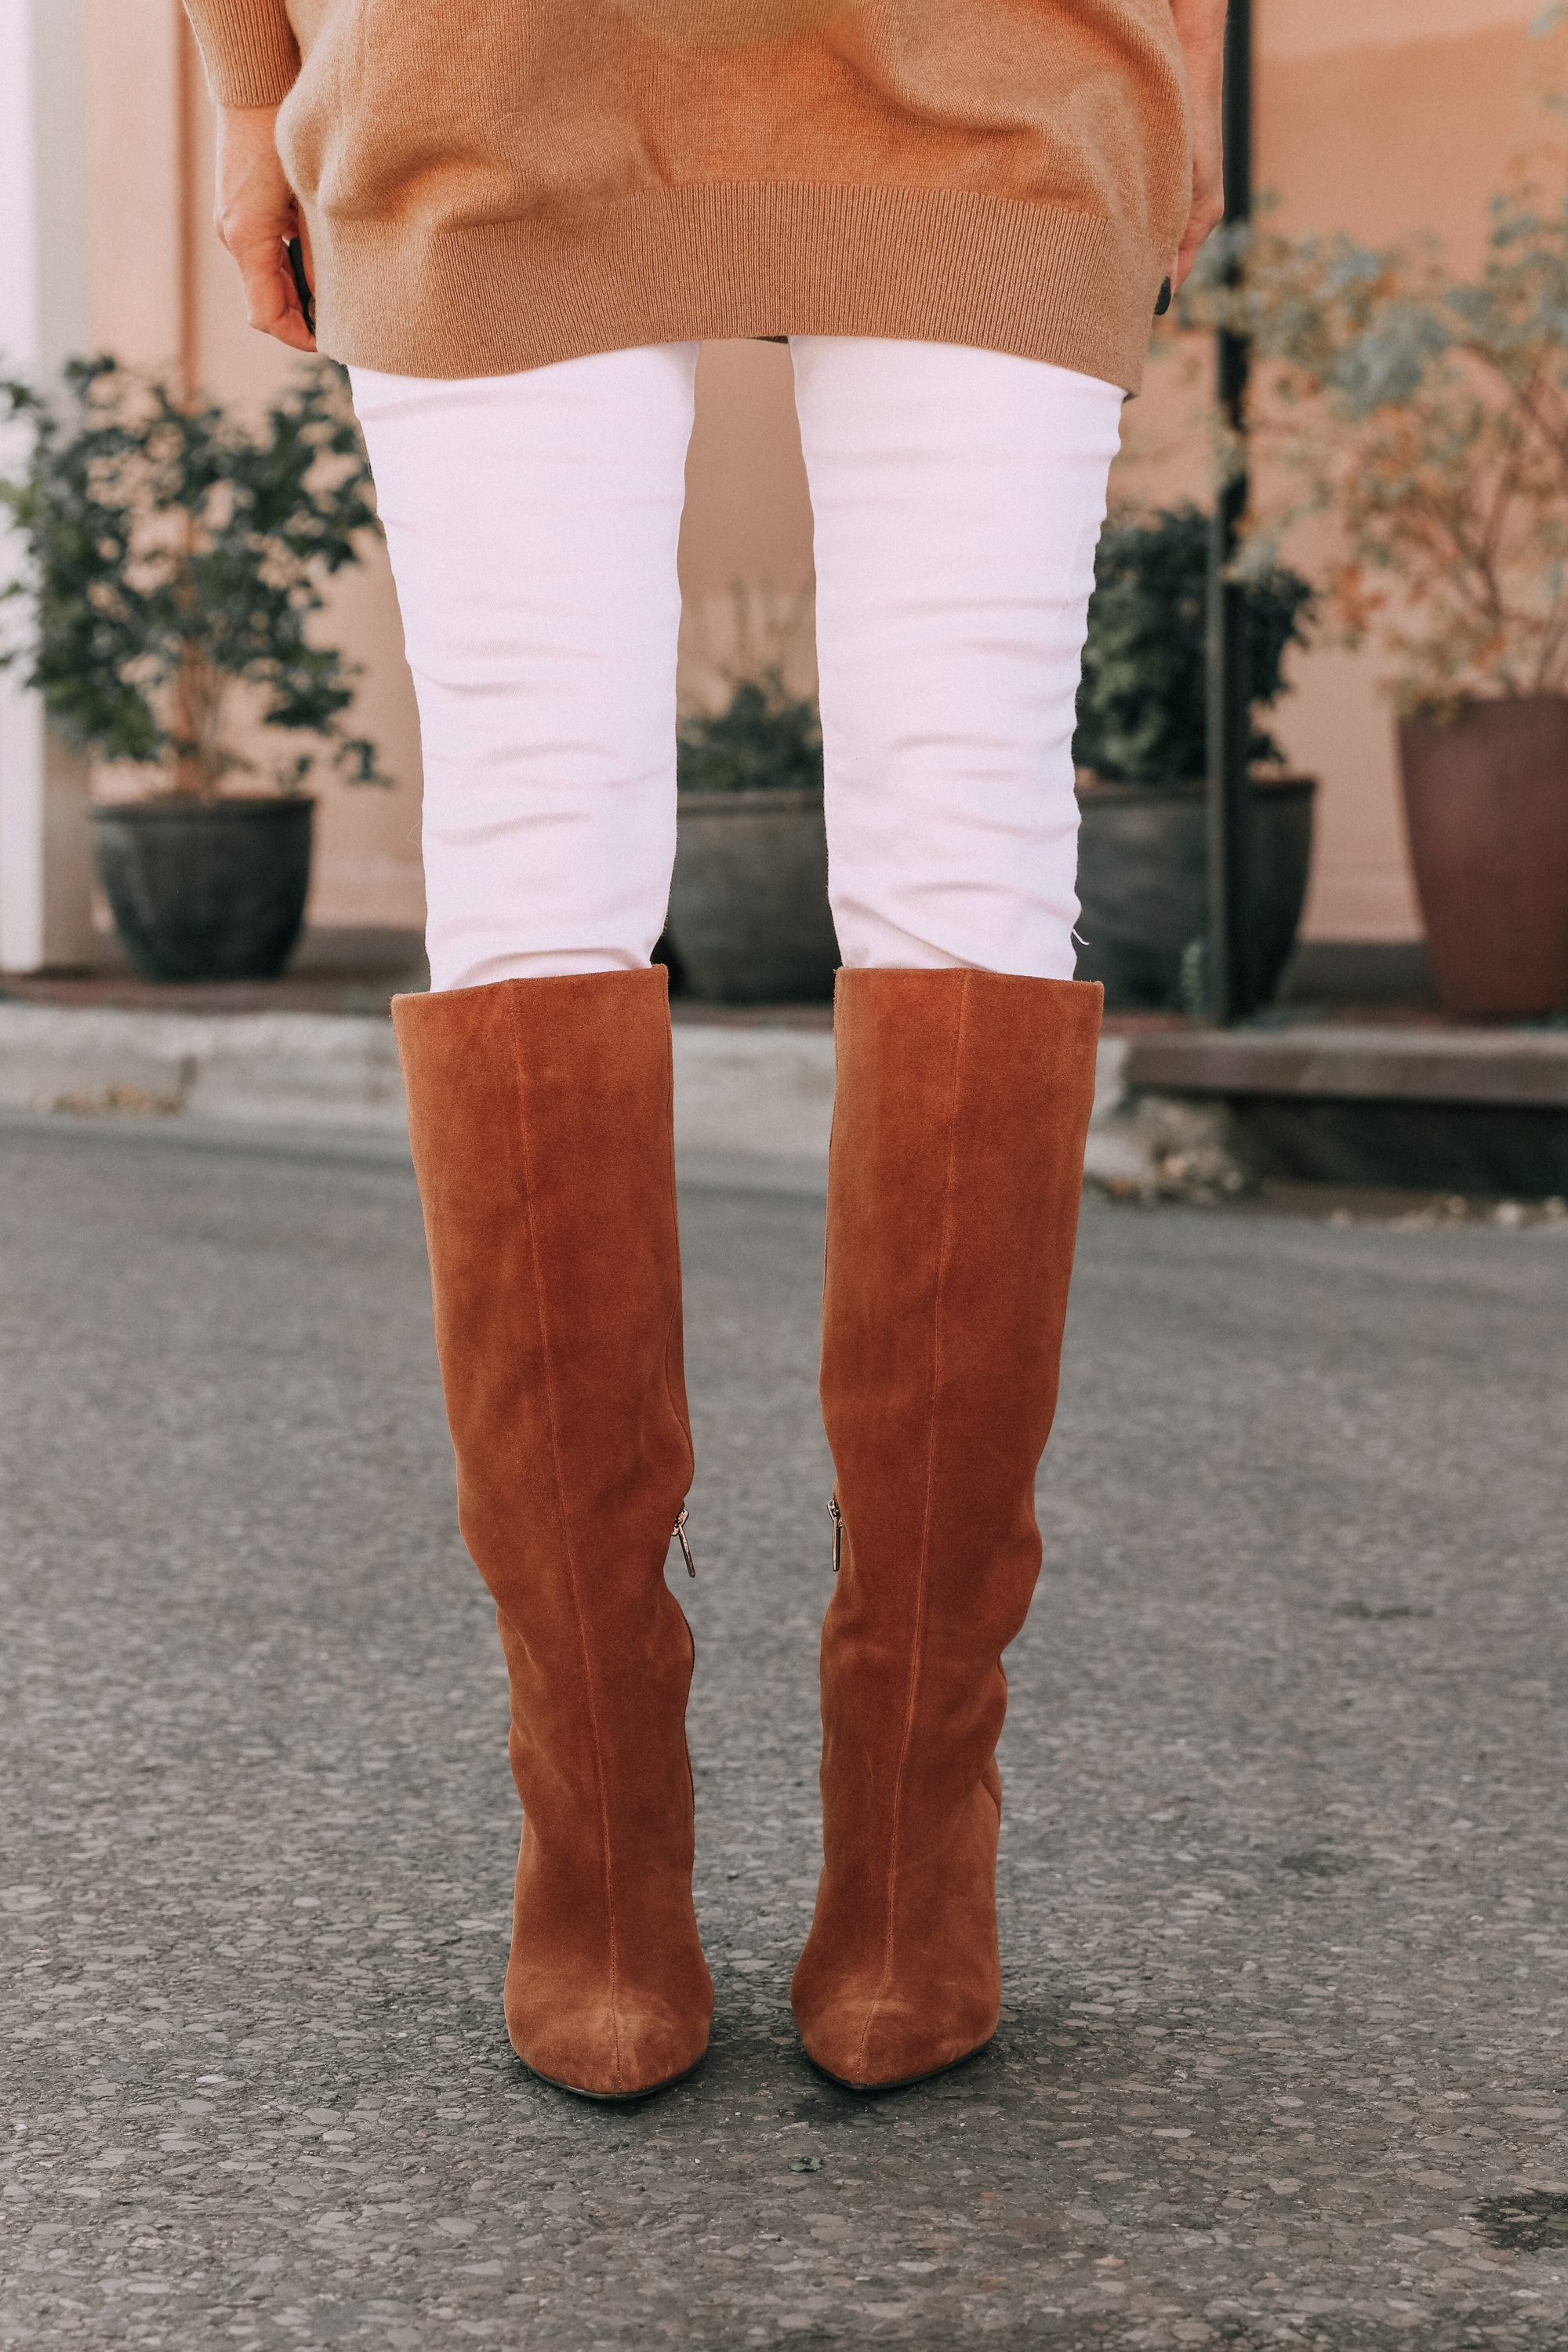 brown suede knee boots vince camuto modesie cone-heel boot fall autumn outfit with white jeans camel sweater